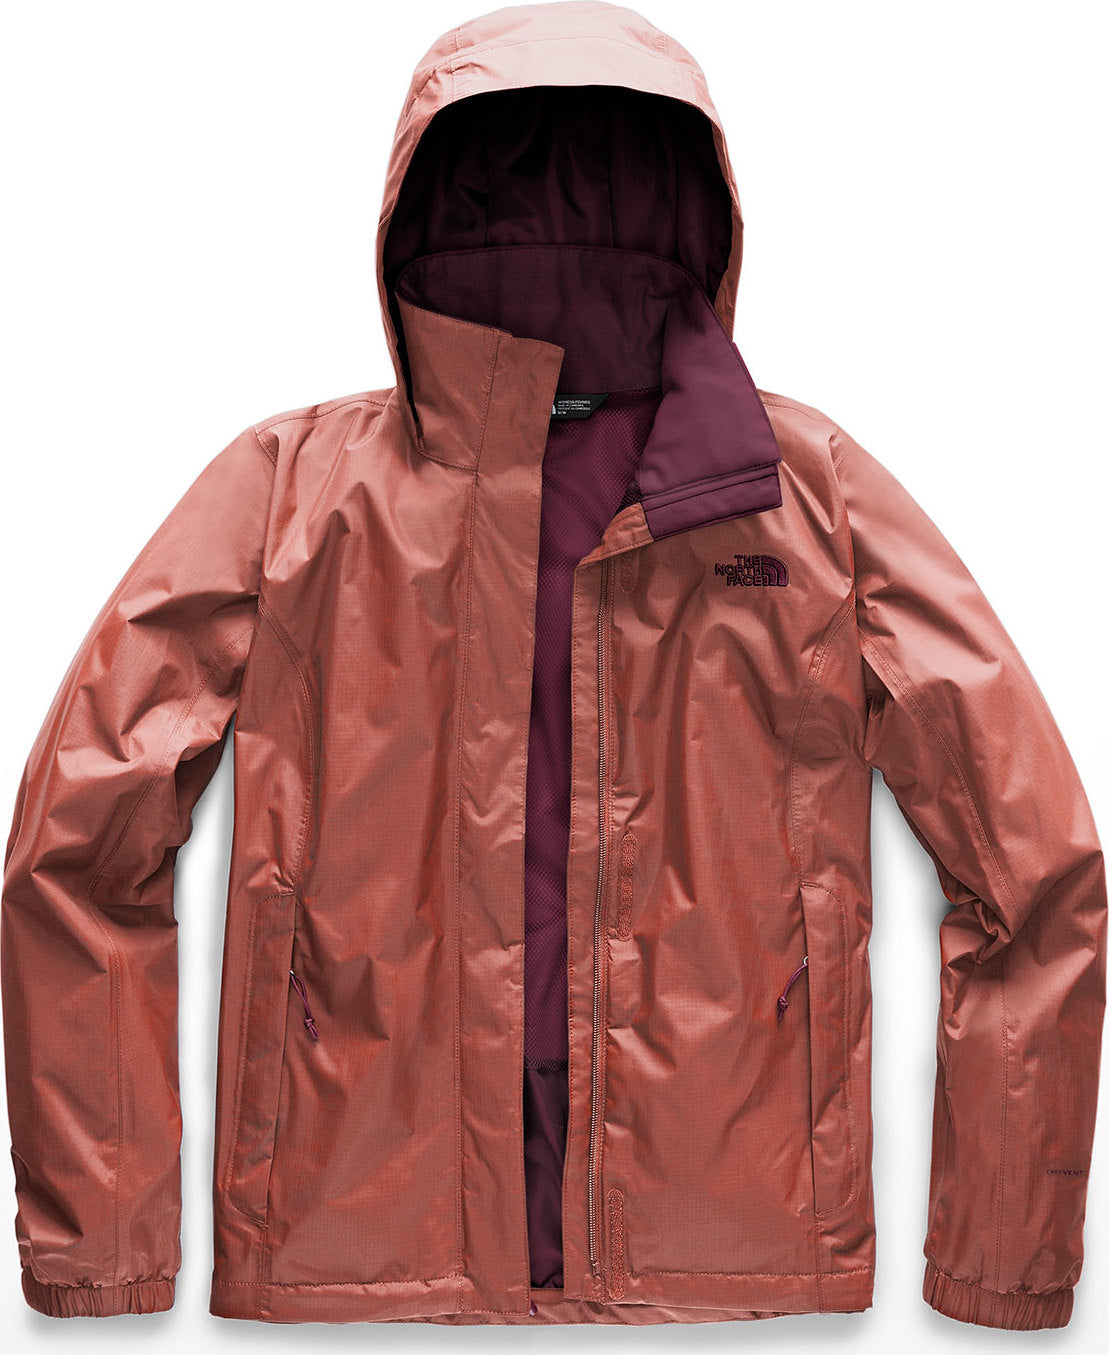 60fabc048 Resolve 2 Jacket - Women's